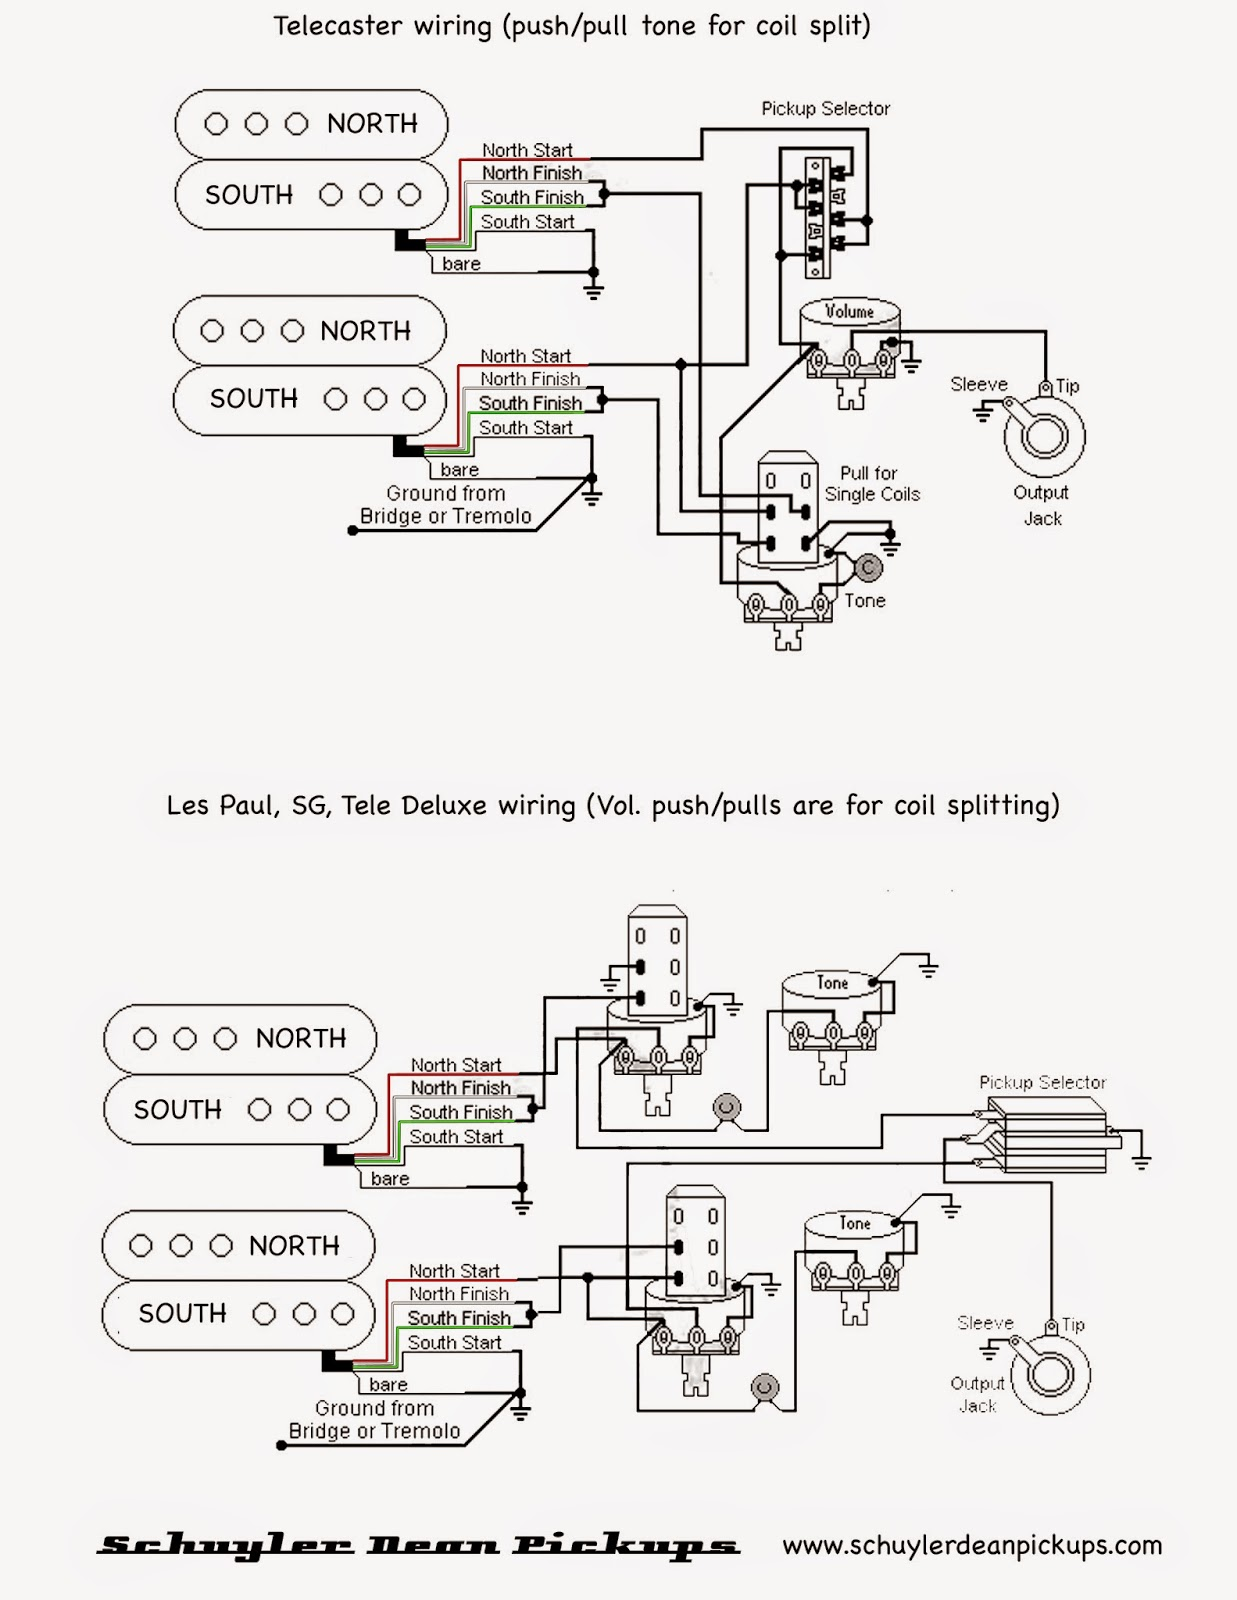 Wiring%2Bdiagram%2BTele LP schuyler dean pickups 2014 coil tap wiring diagram at eliteediting.co